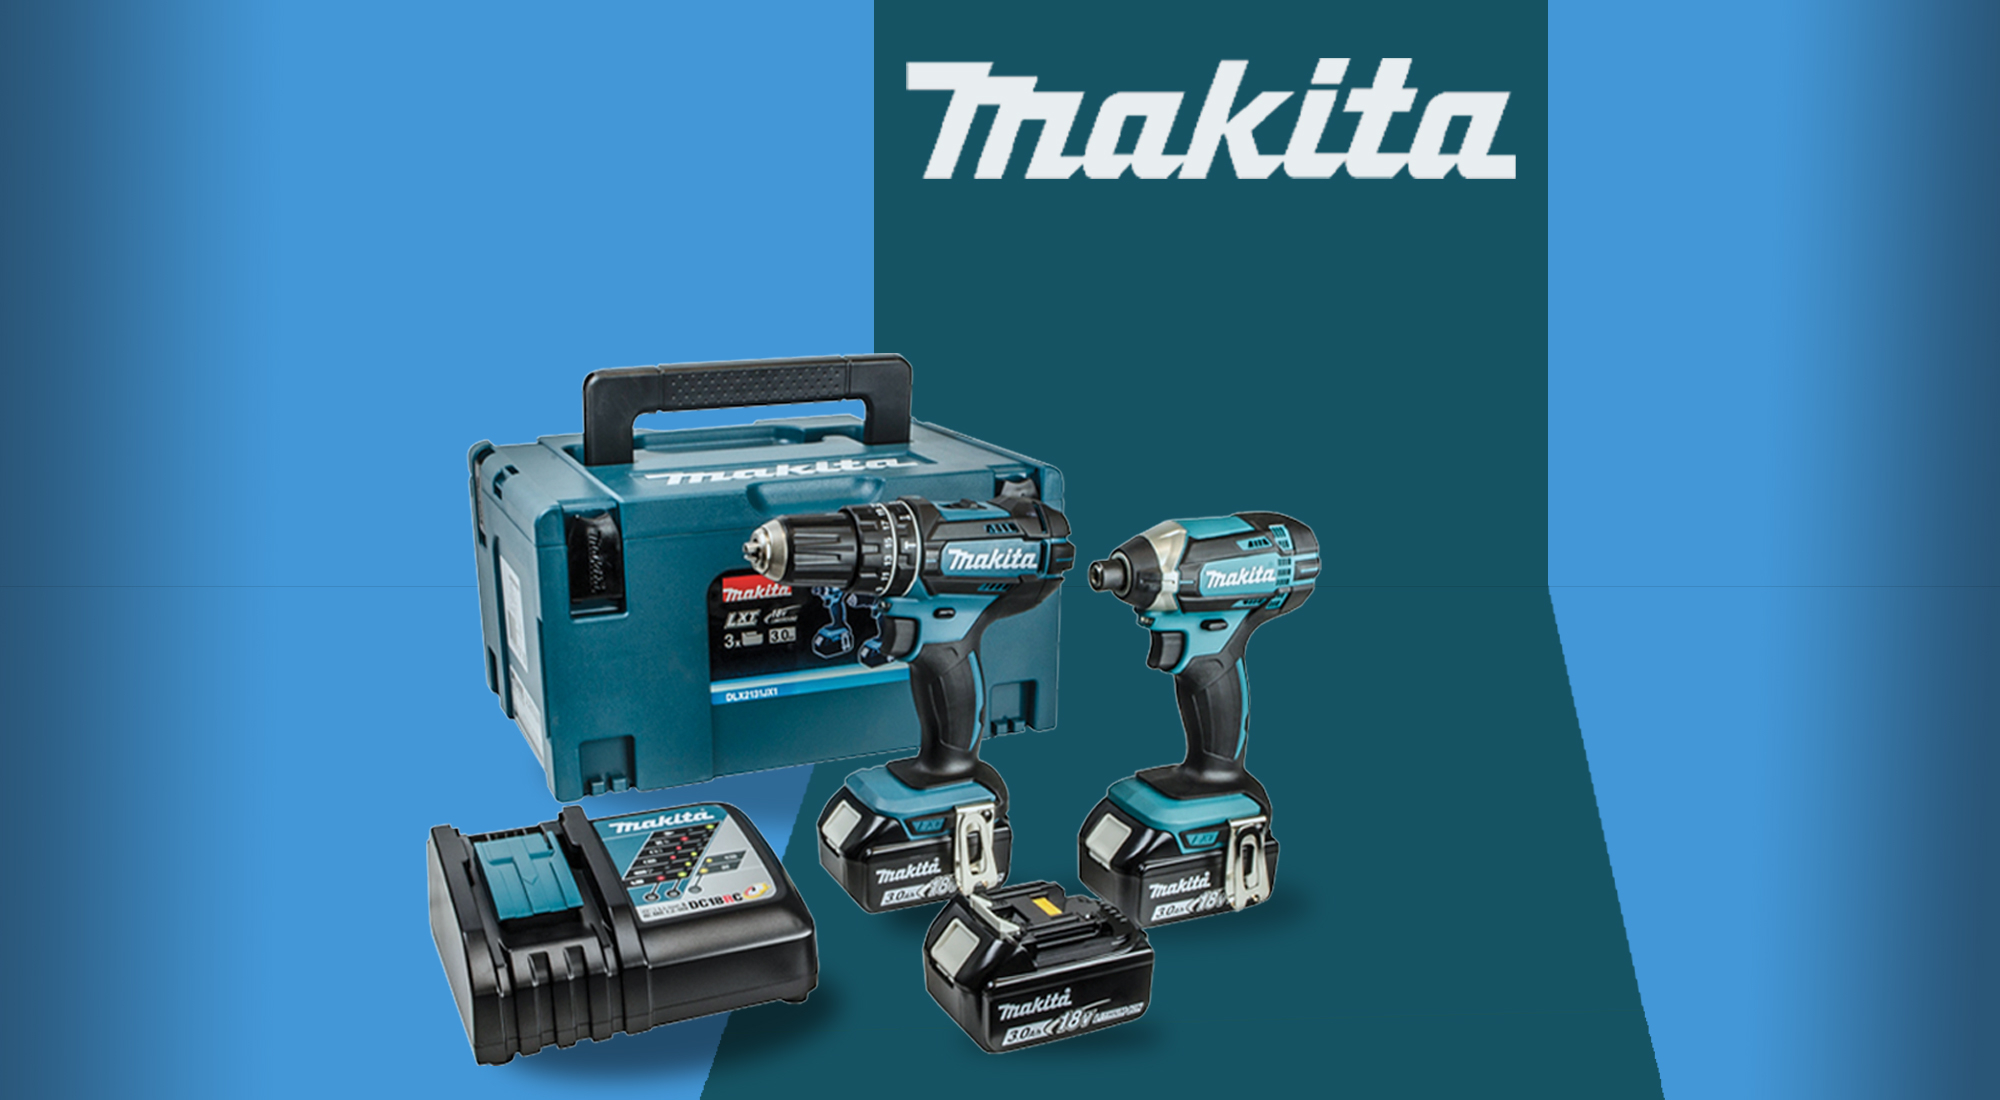 Makita HR4511C SDS Max Rotary Demolition Hammer Drill with AVT 110V